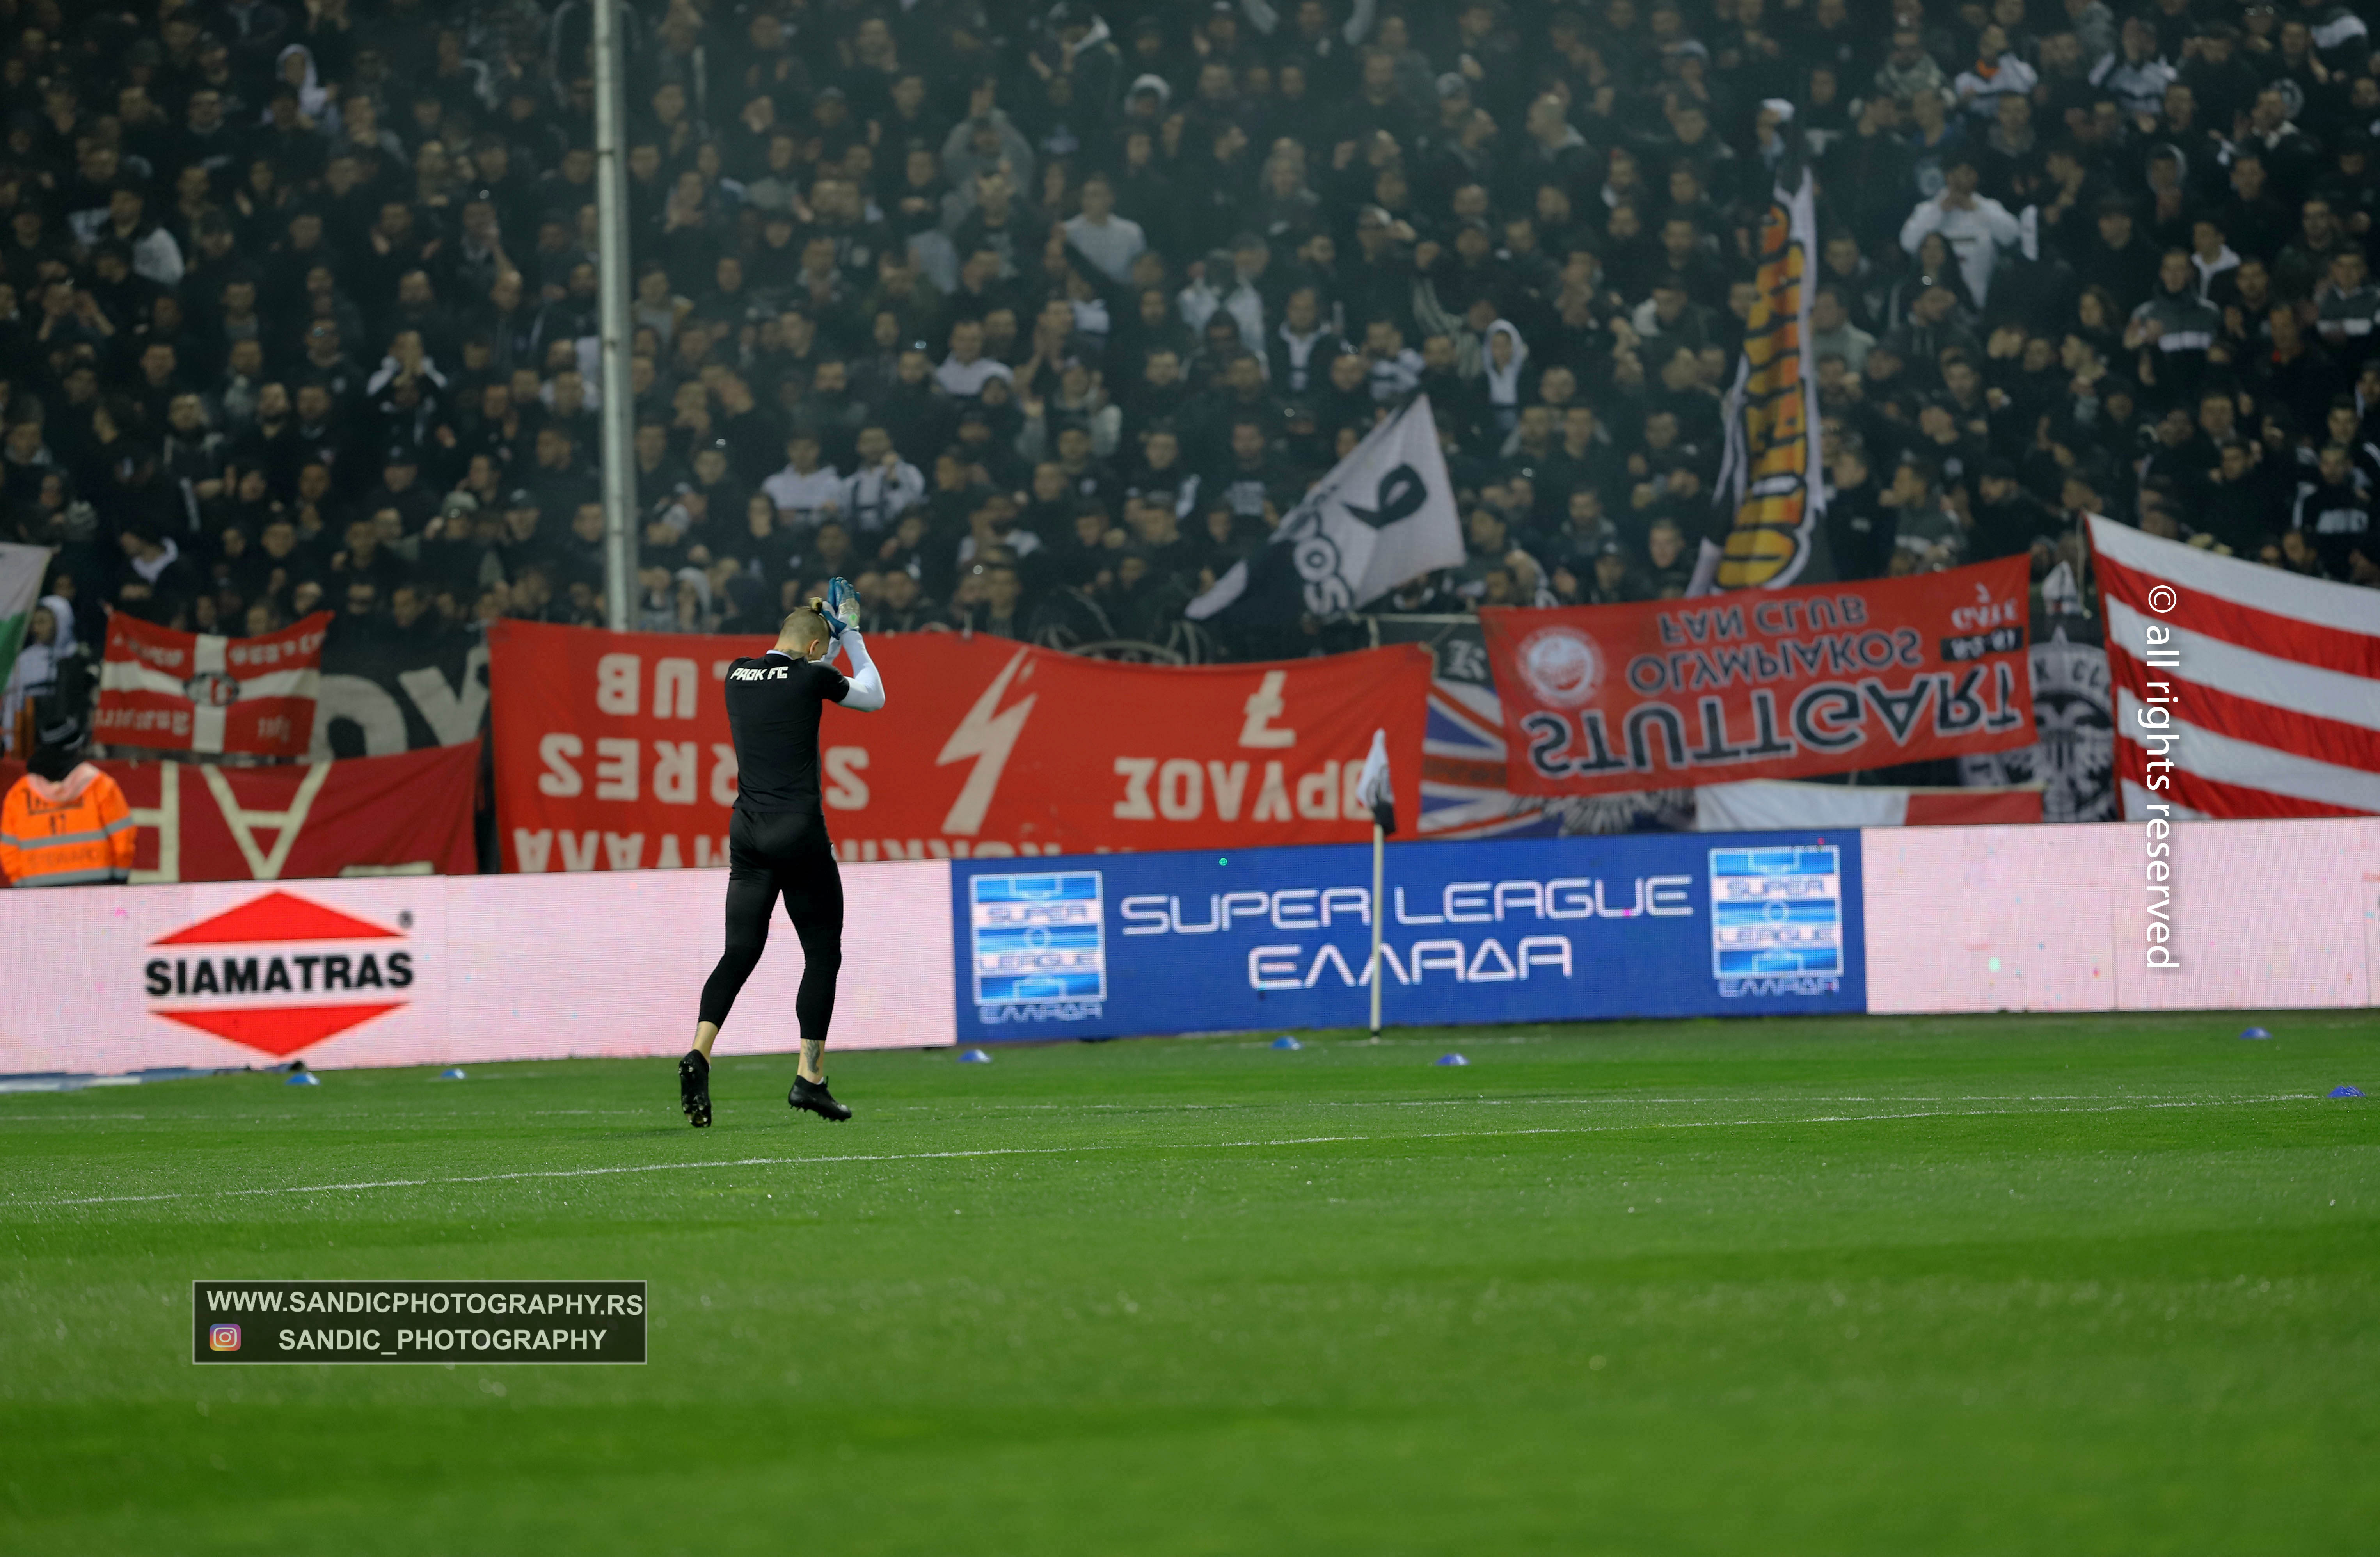 Super League Greece / PAOK FC - Olympiacos F.C 23.02.2020 ...